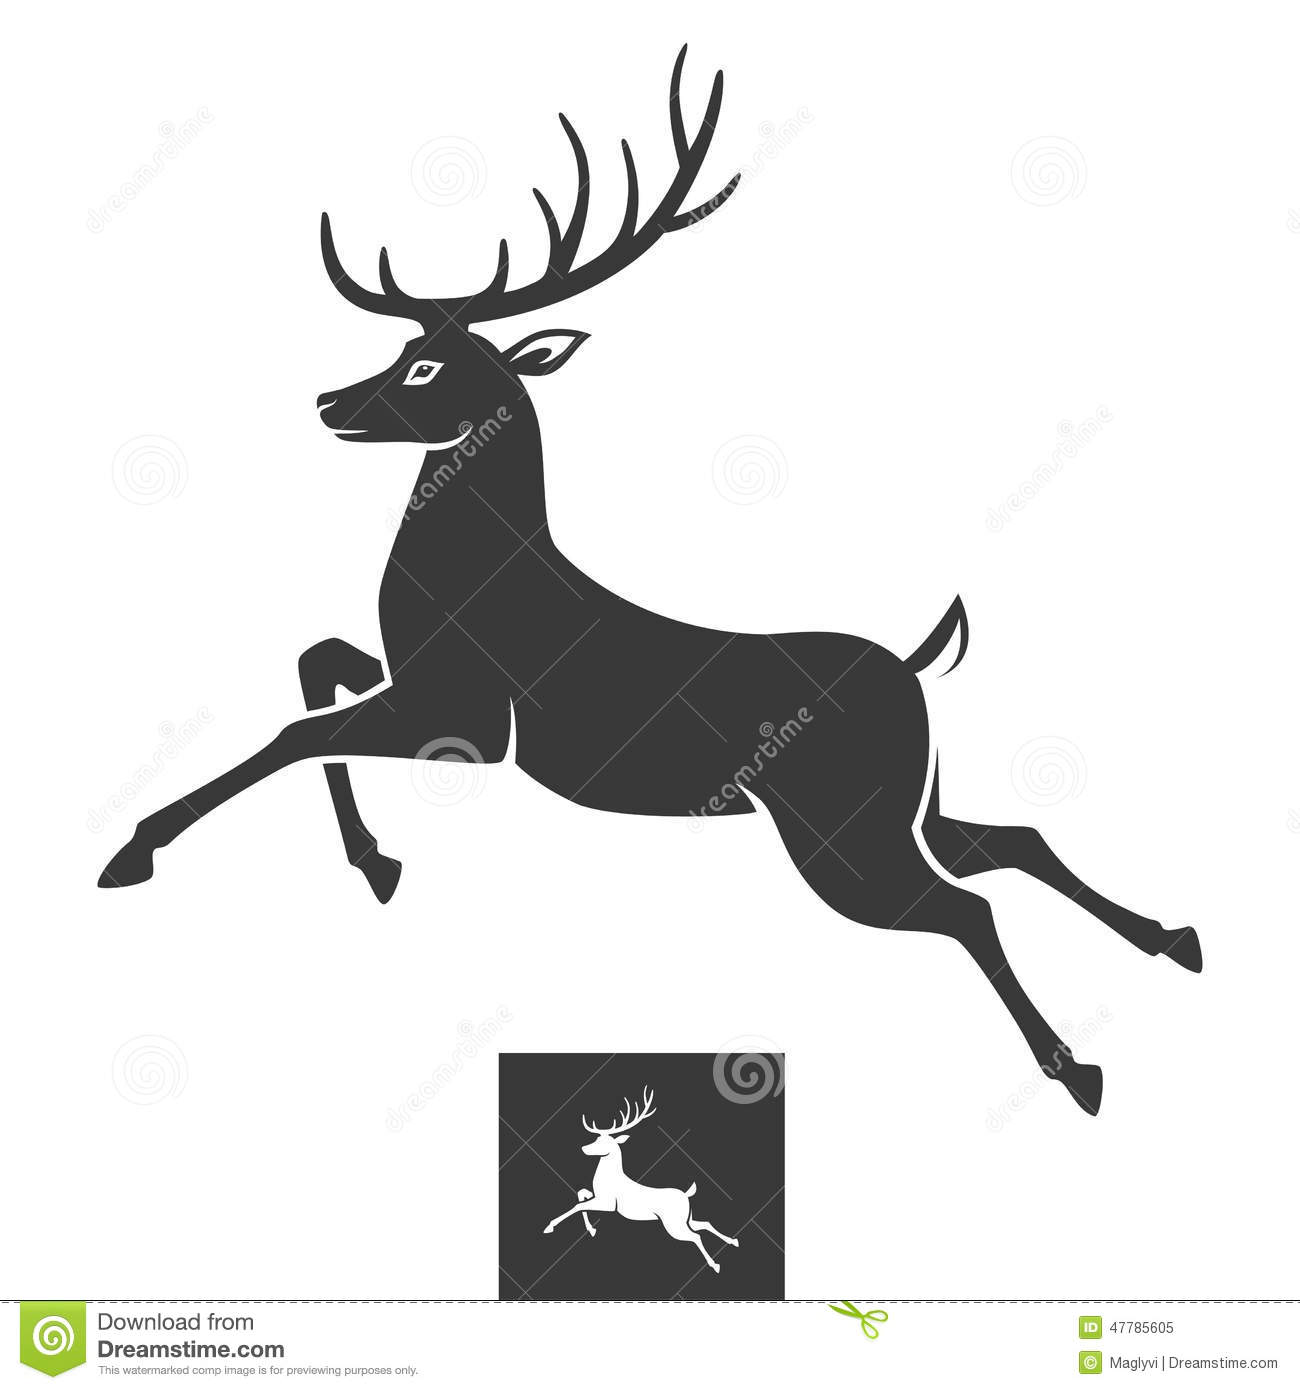 Deer illustration black and white - photo#25